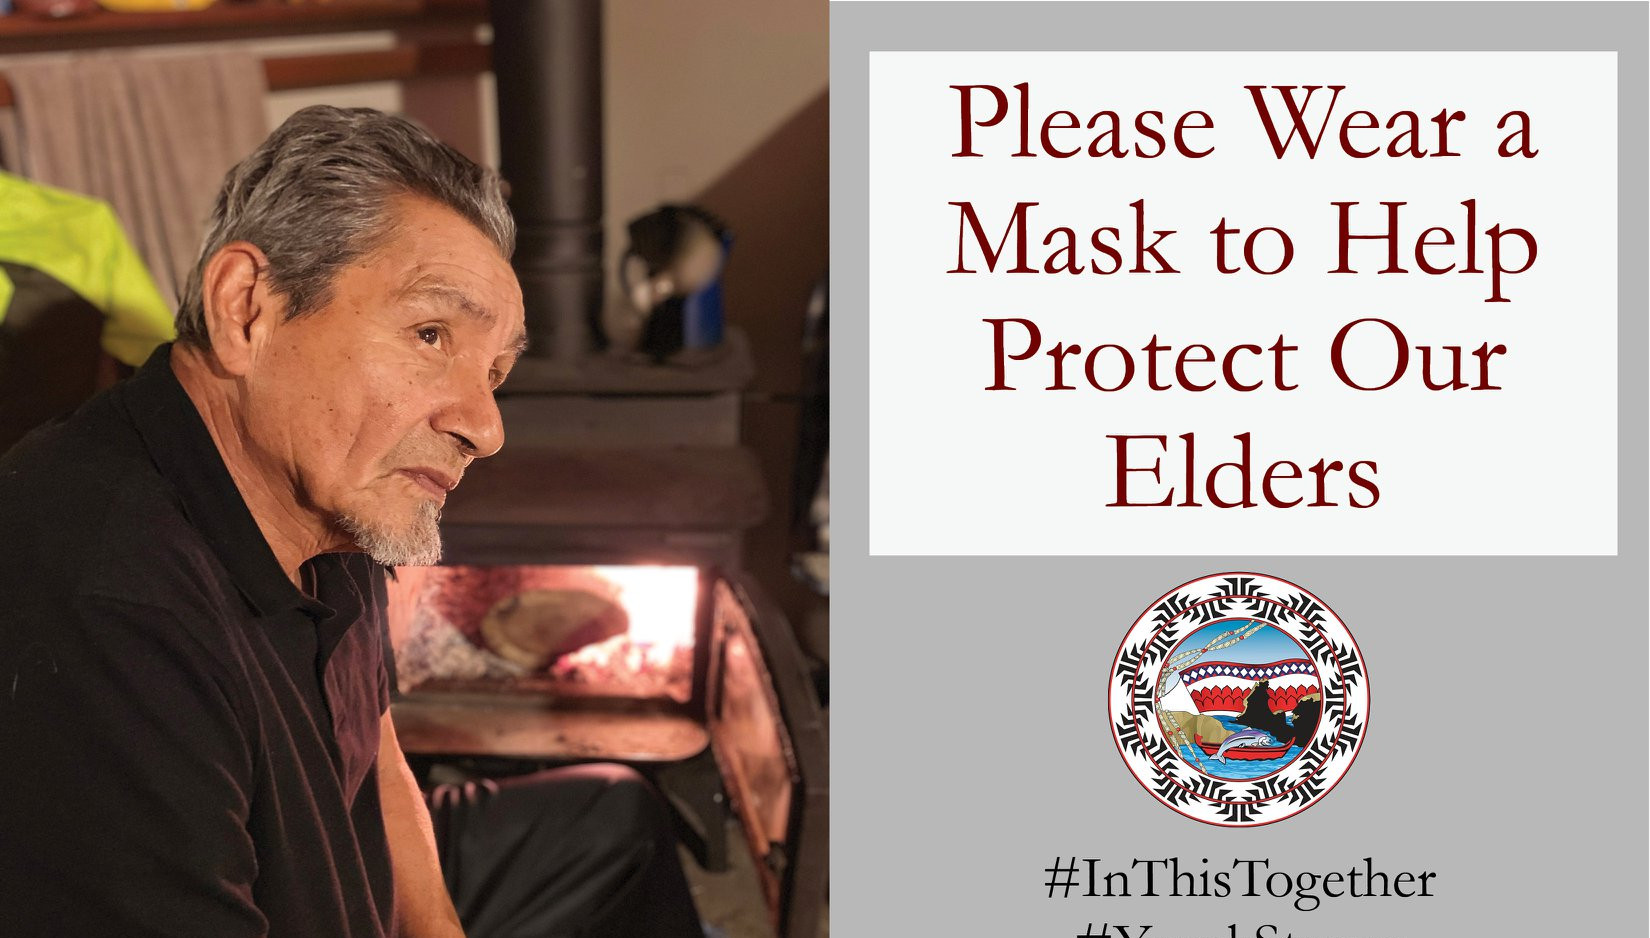 Please Wear a Mask to Help Protect Our Elders